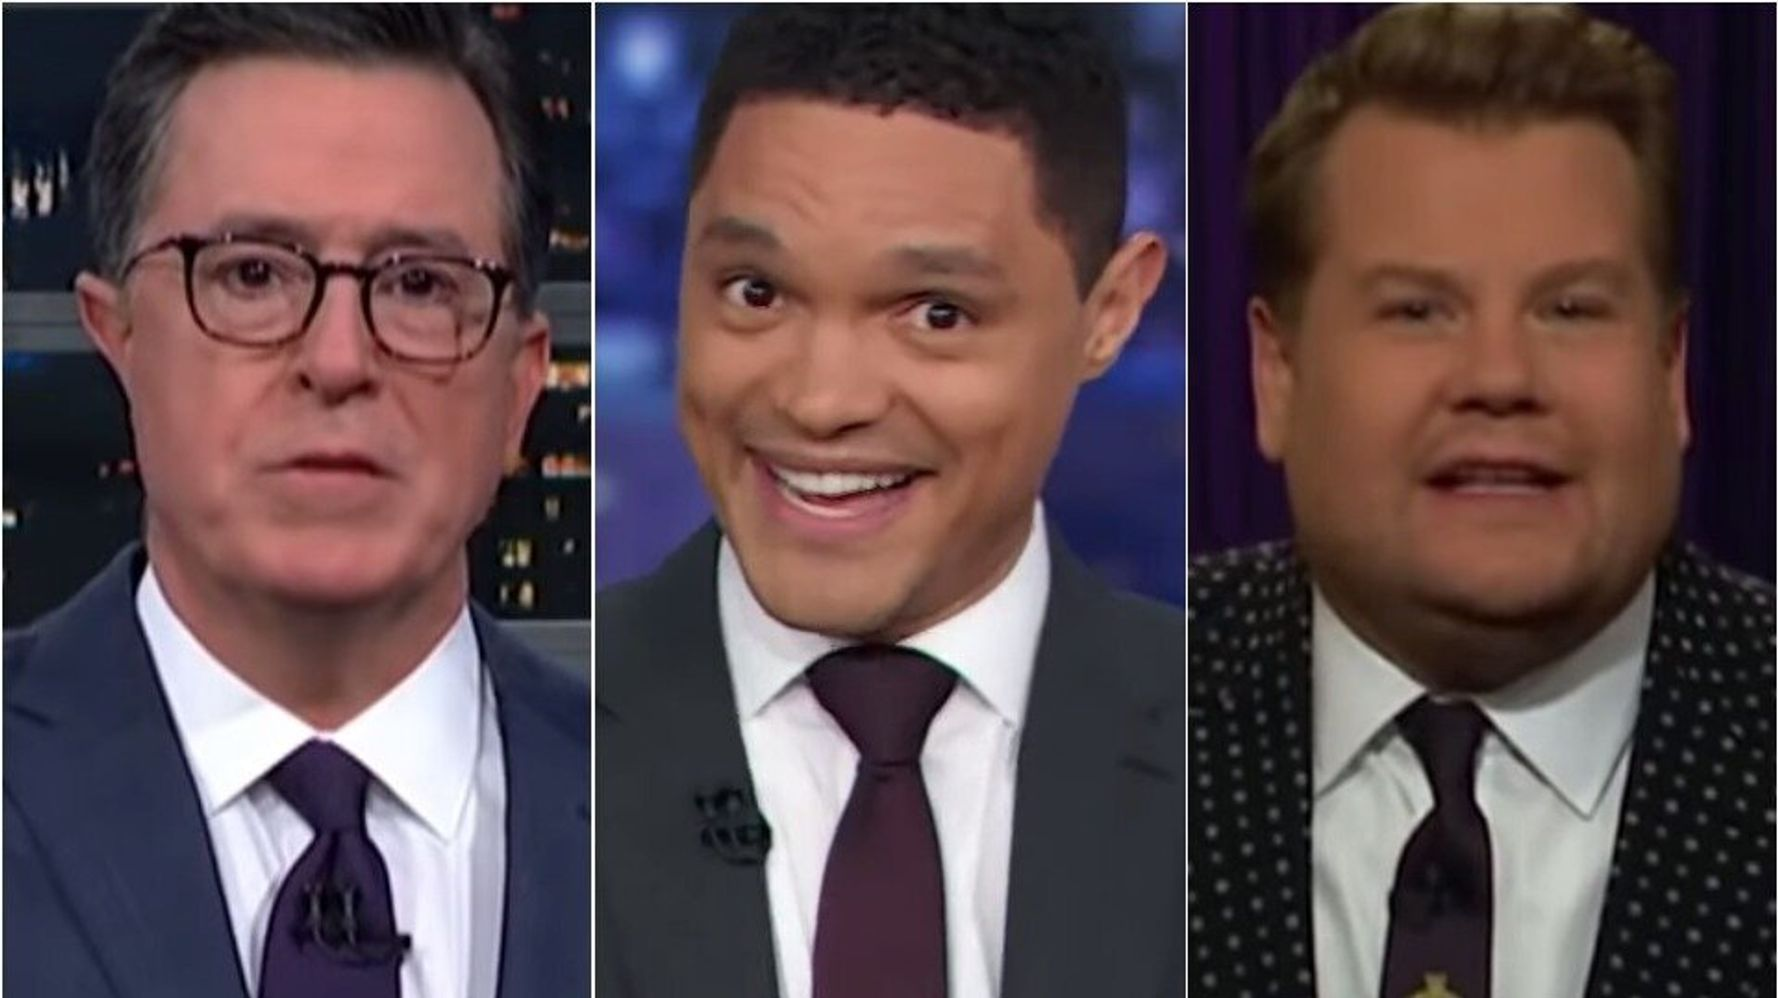 Westlake Legal Group 5e1ec8e124000033006c3c94 Late Night Hosts Rip Dem Debate's All-White Stage: Thought Oscars Was Next Month?